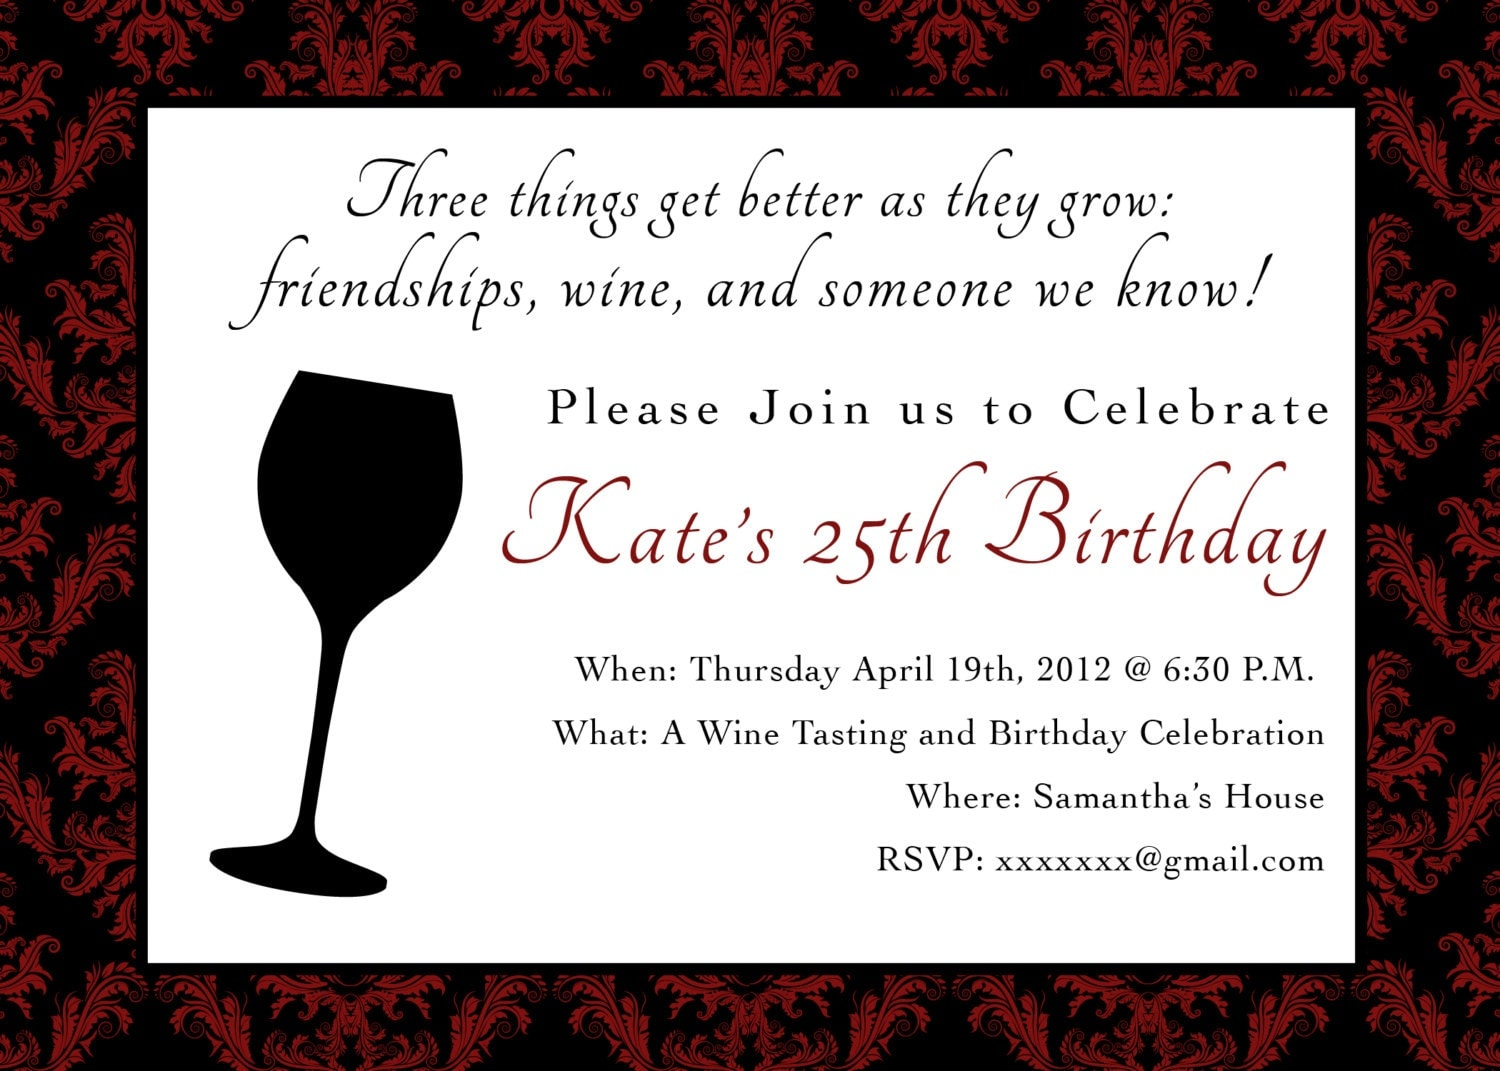 80Th Birthday Invite was best invitations layout